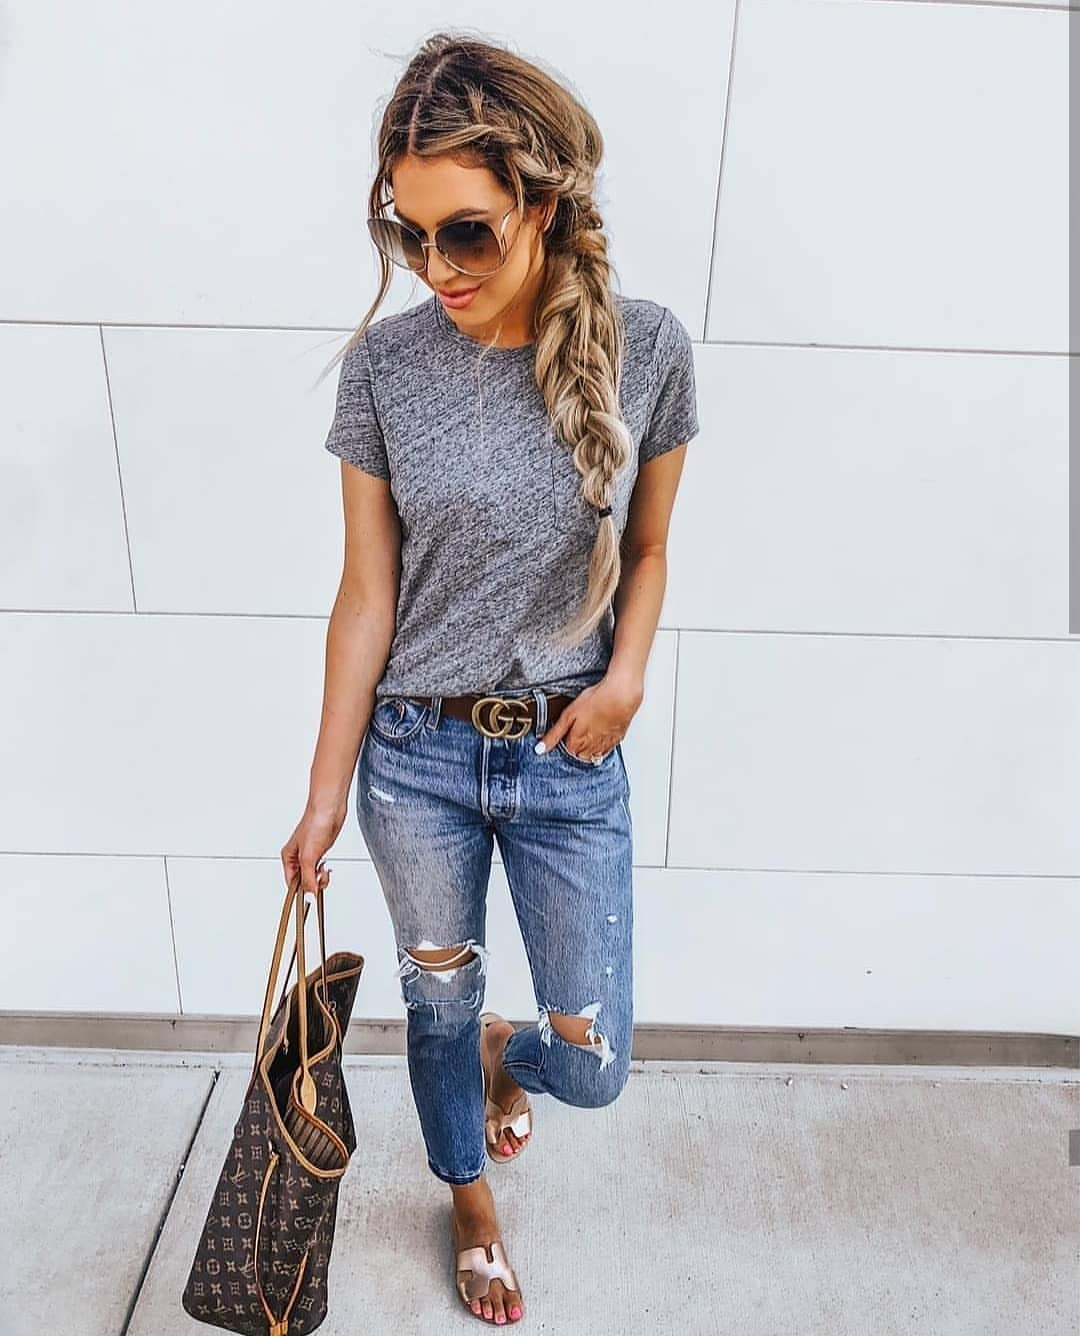 Washed Blue Ripped Jeans And Grey T-Shirt For Summer Vacation 2019